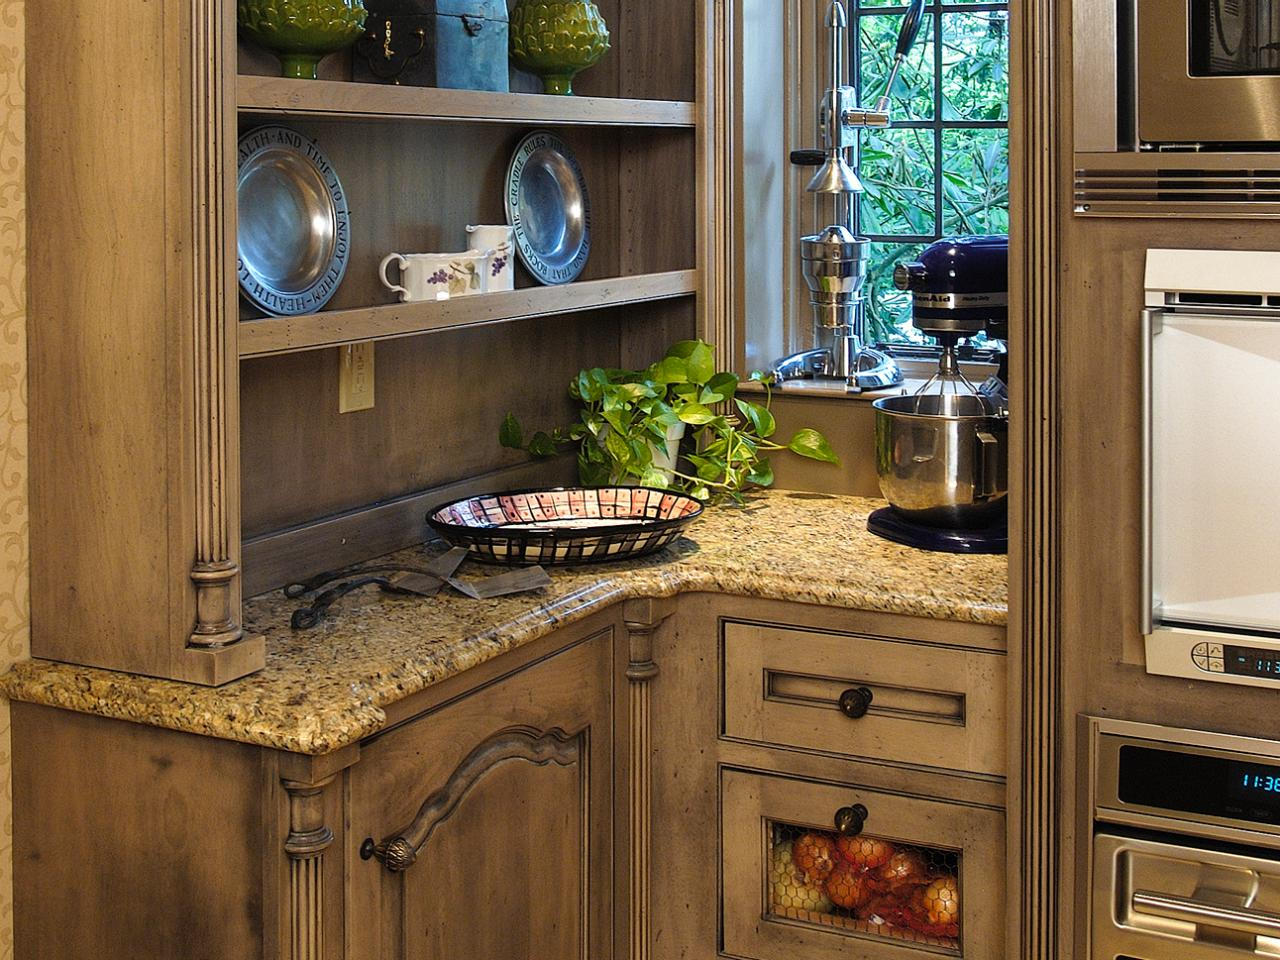 Stylish Kitchen Storage Ideas Kitchen Ideas Design With Cabinets